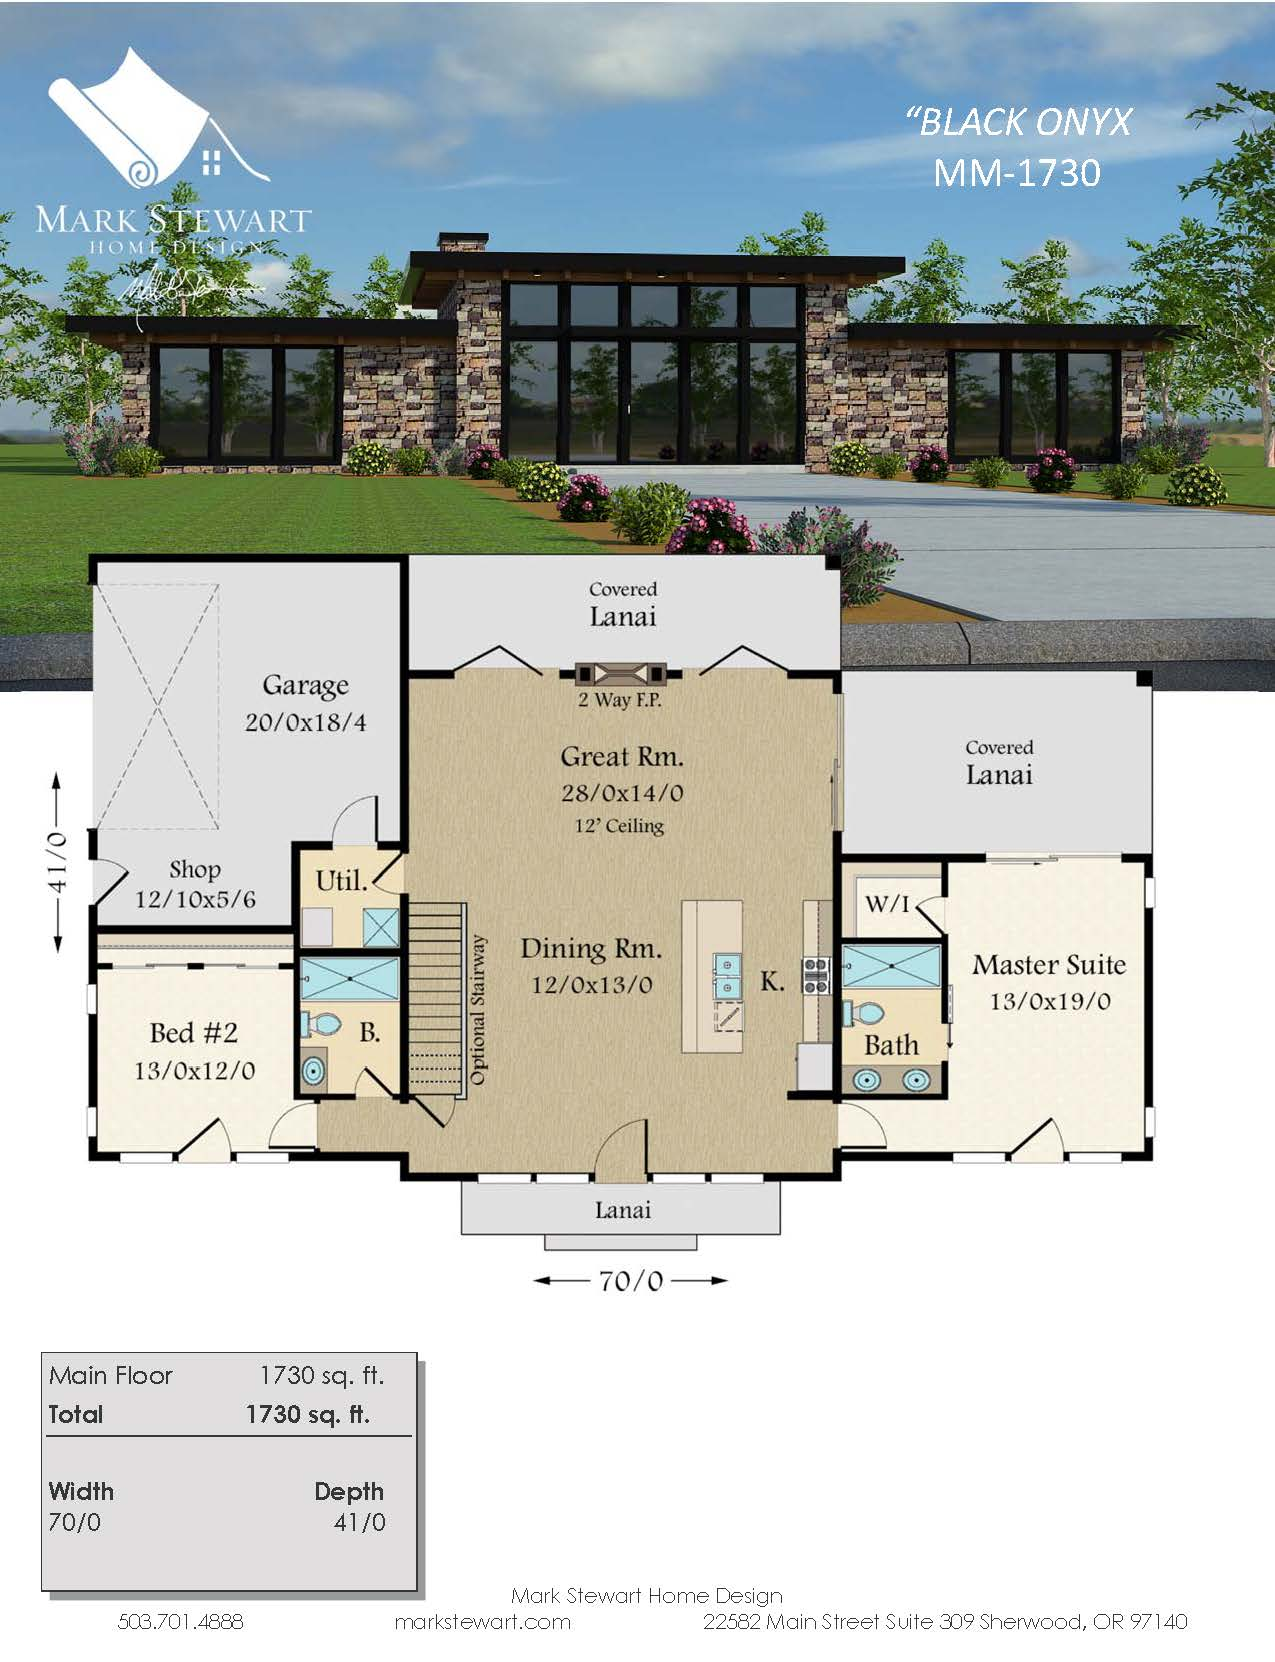 Black onyx modern shed roof house plan by mark stewart home design